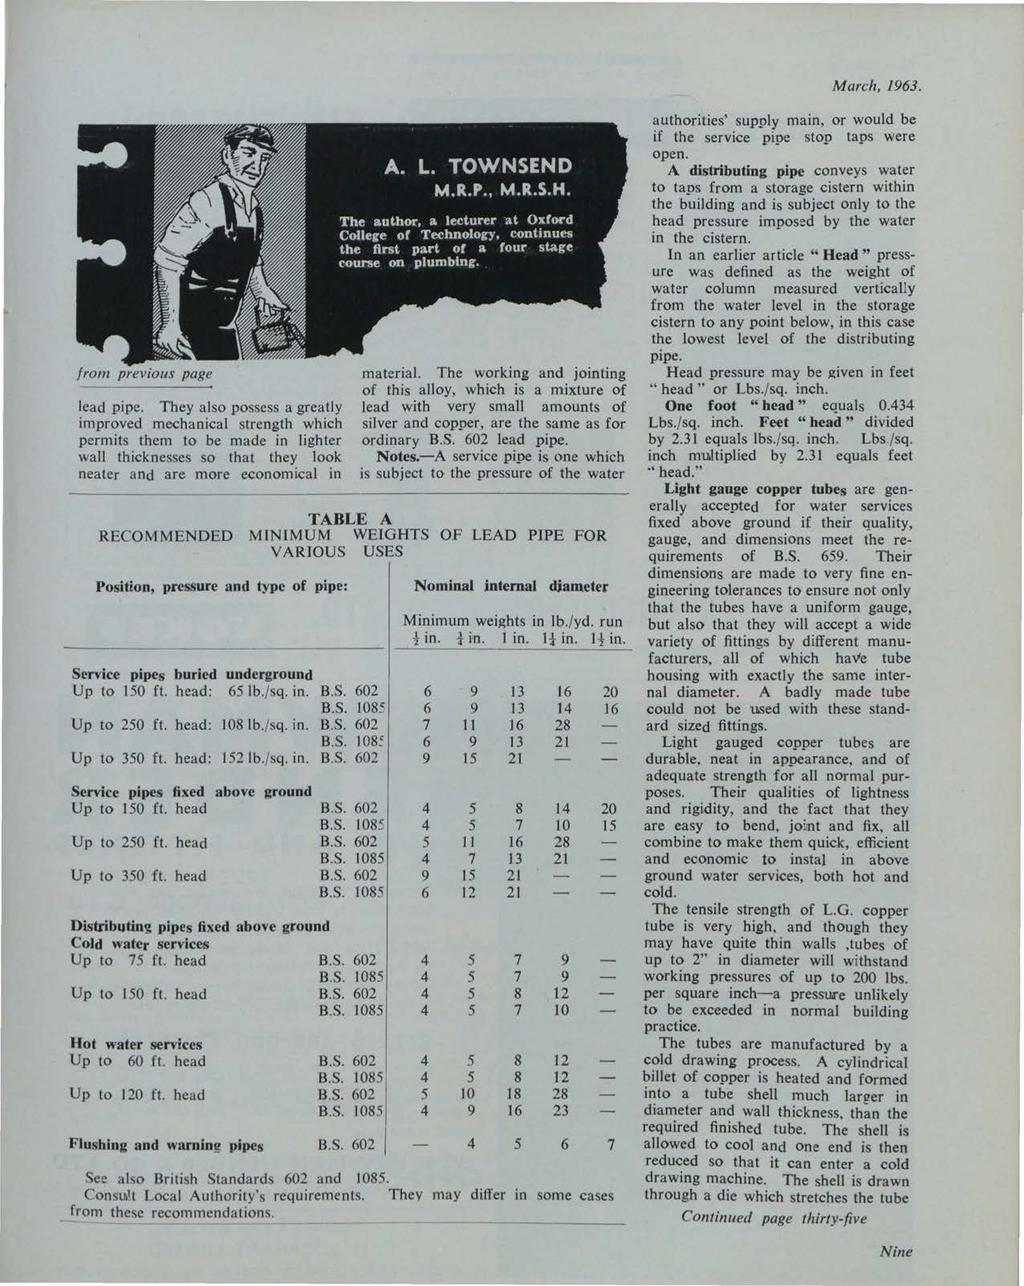 et al.: The Irish Plumber and Heating Contractor, March 1963 (complete is from previous page lead pipe.